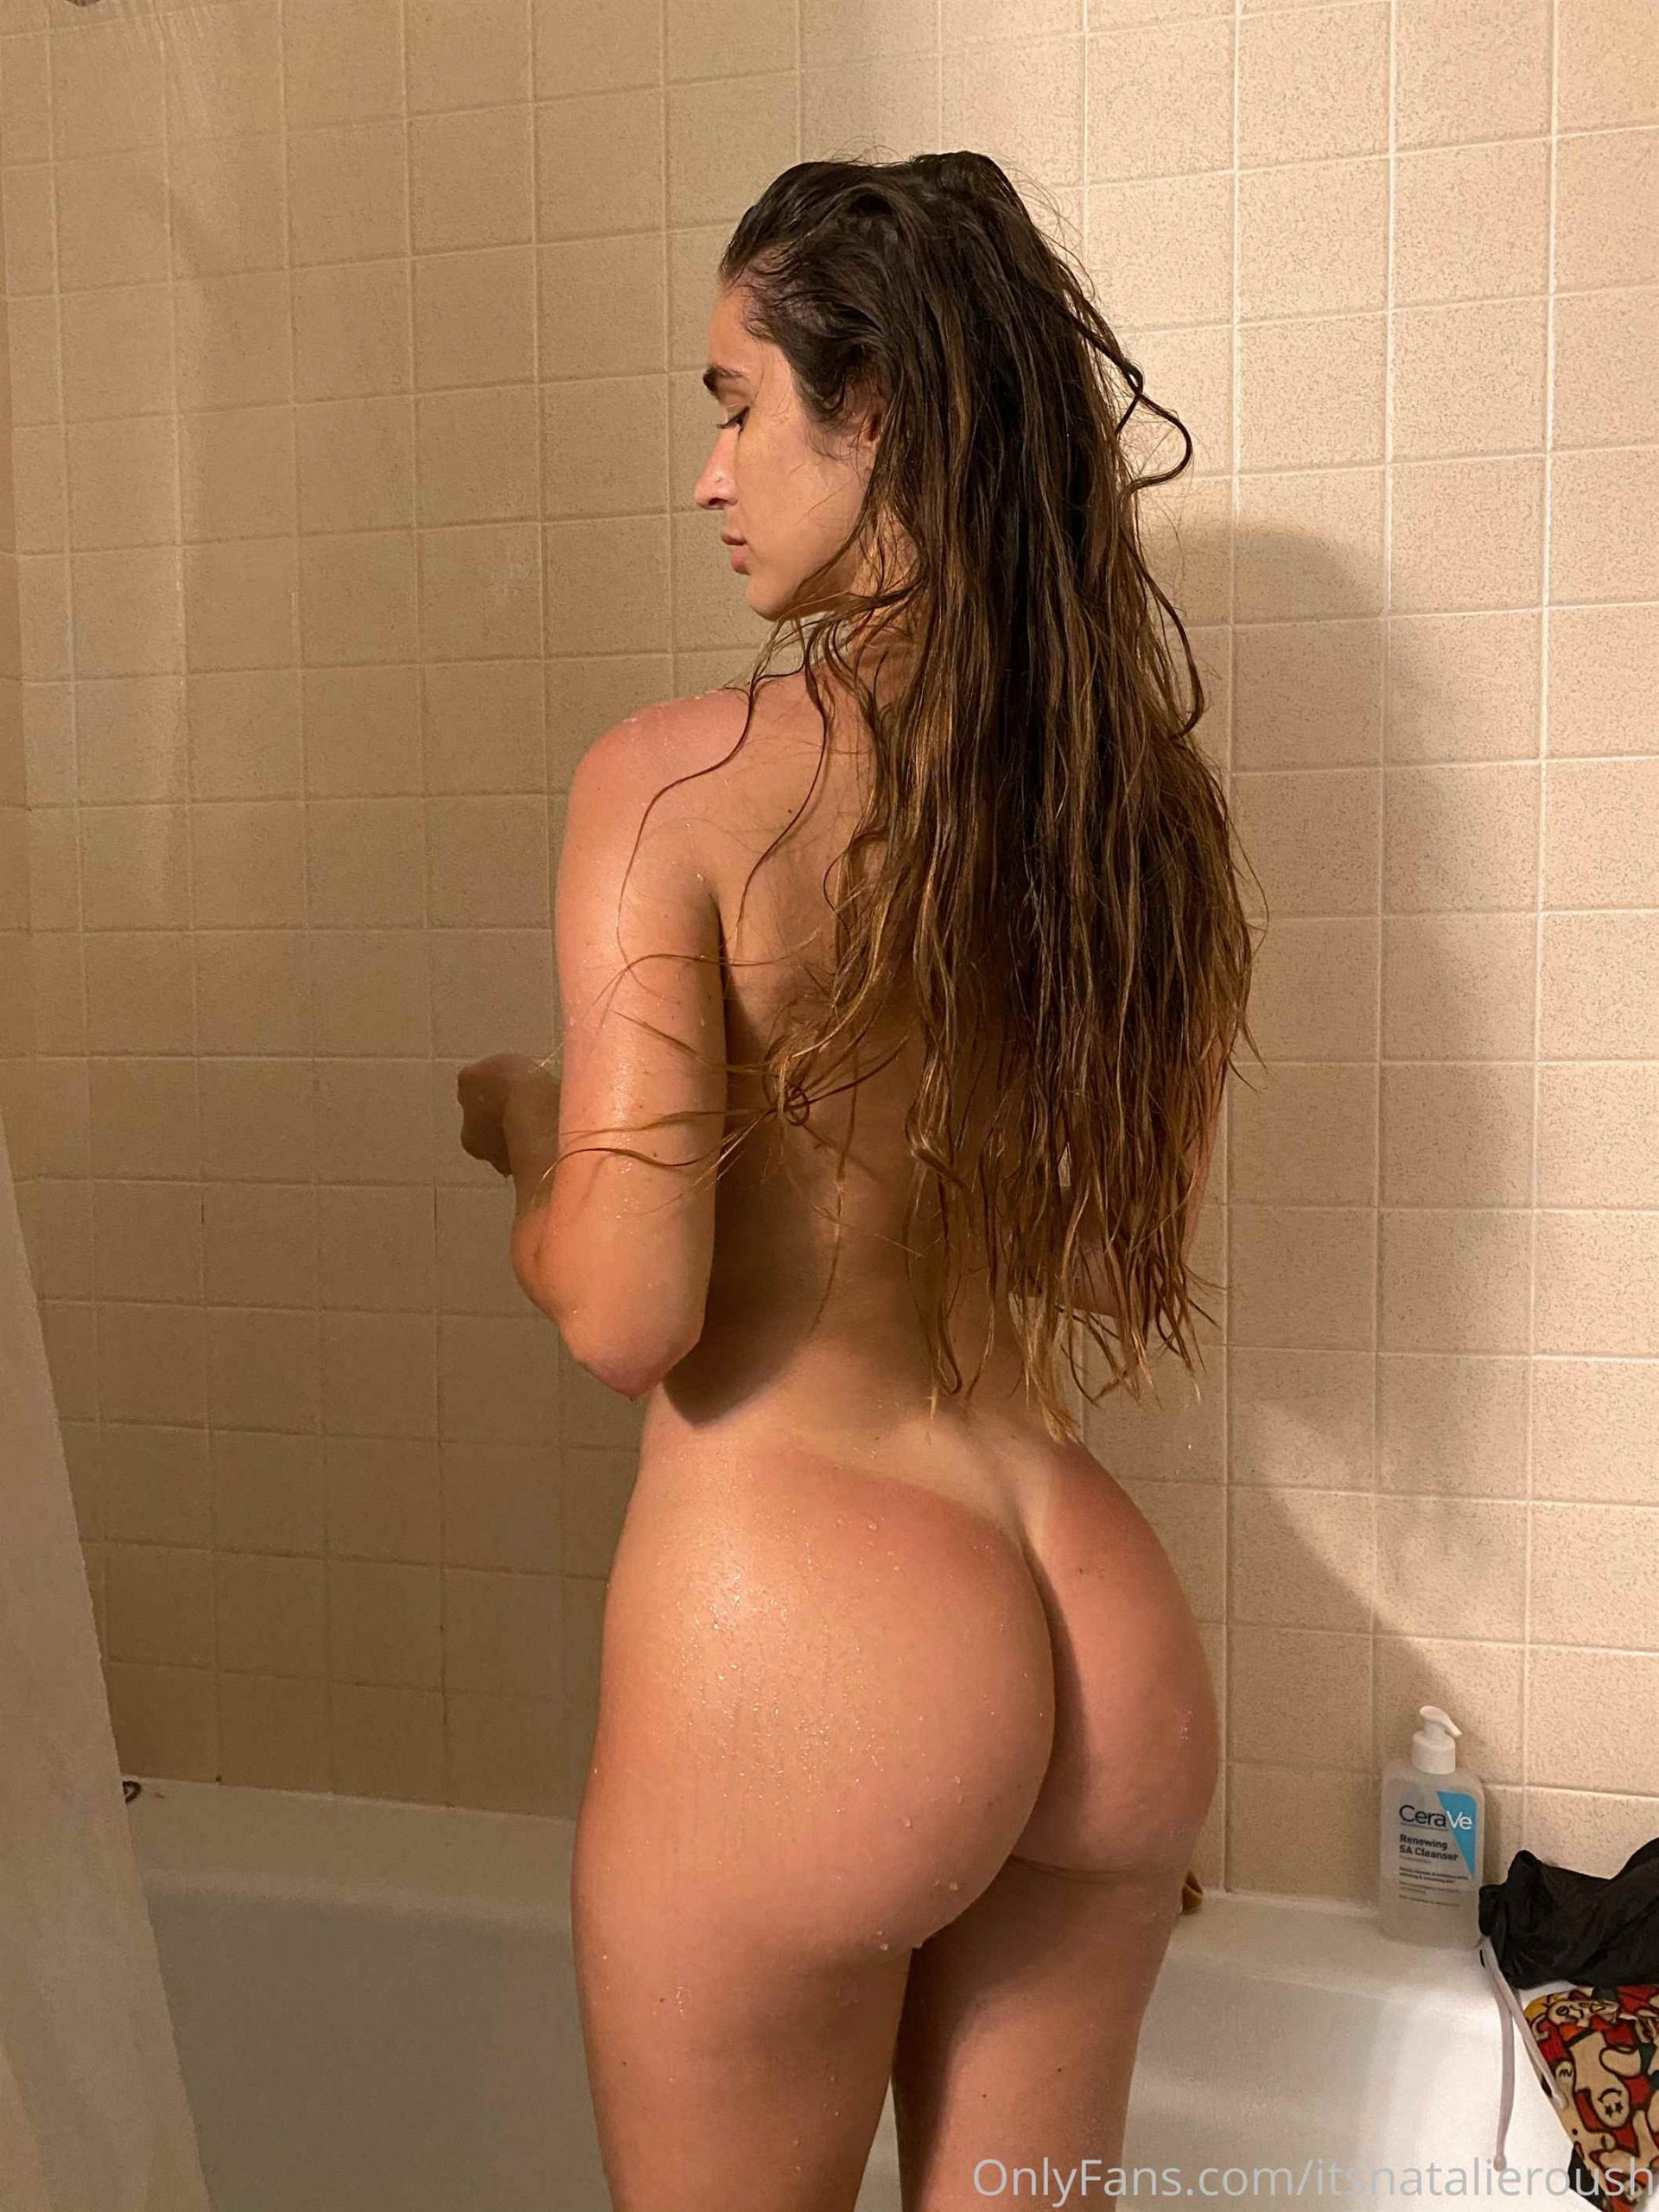 Natalie Roush Nude Leaked Onlyfans Photos 0045